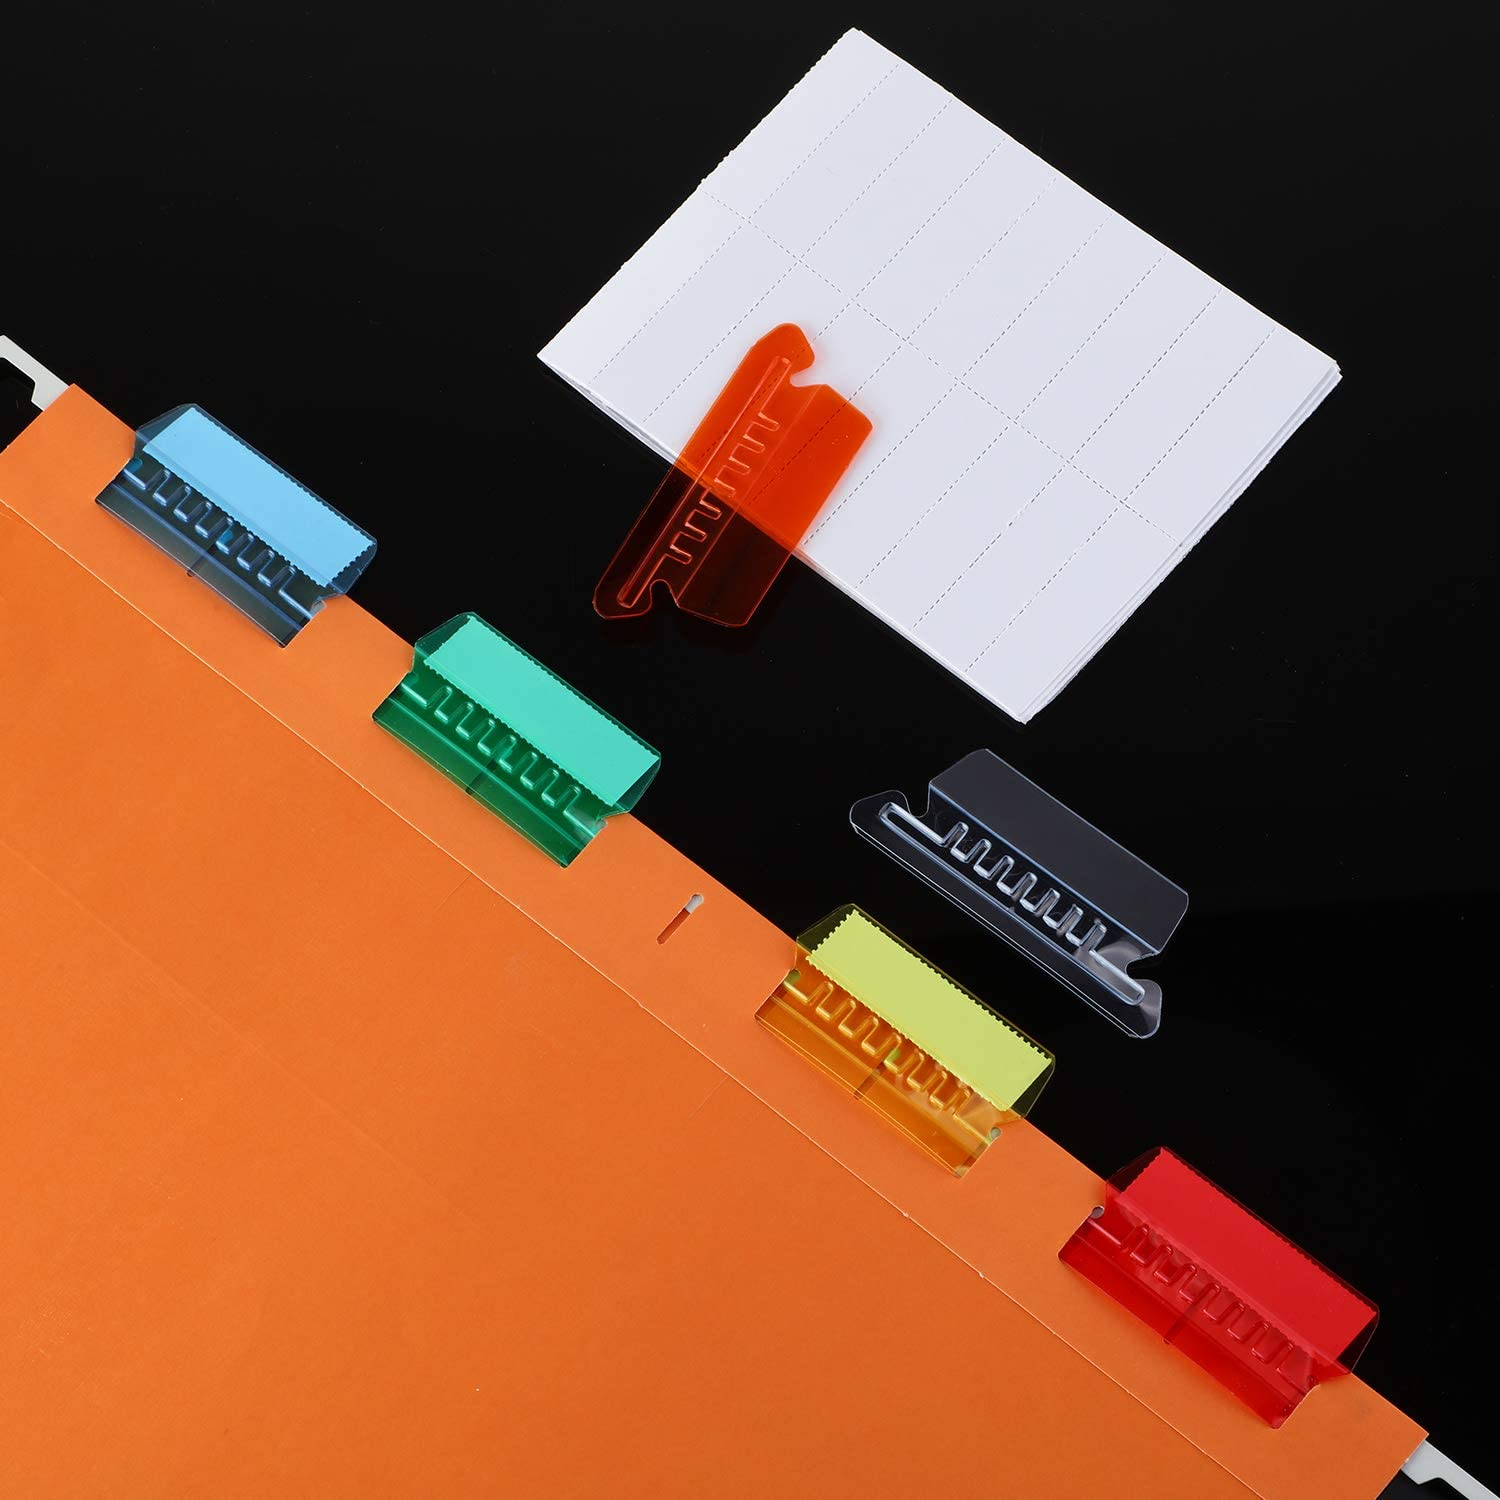 2 to Hanging Folder Tabs and Inserts for Organize and Distinguish Hanging Files